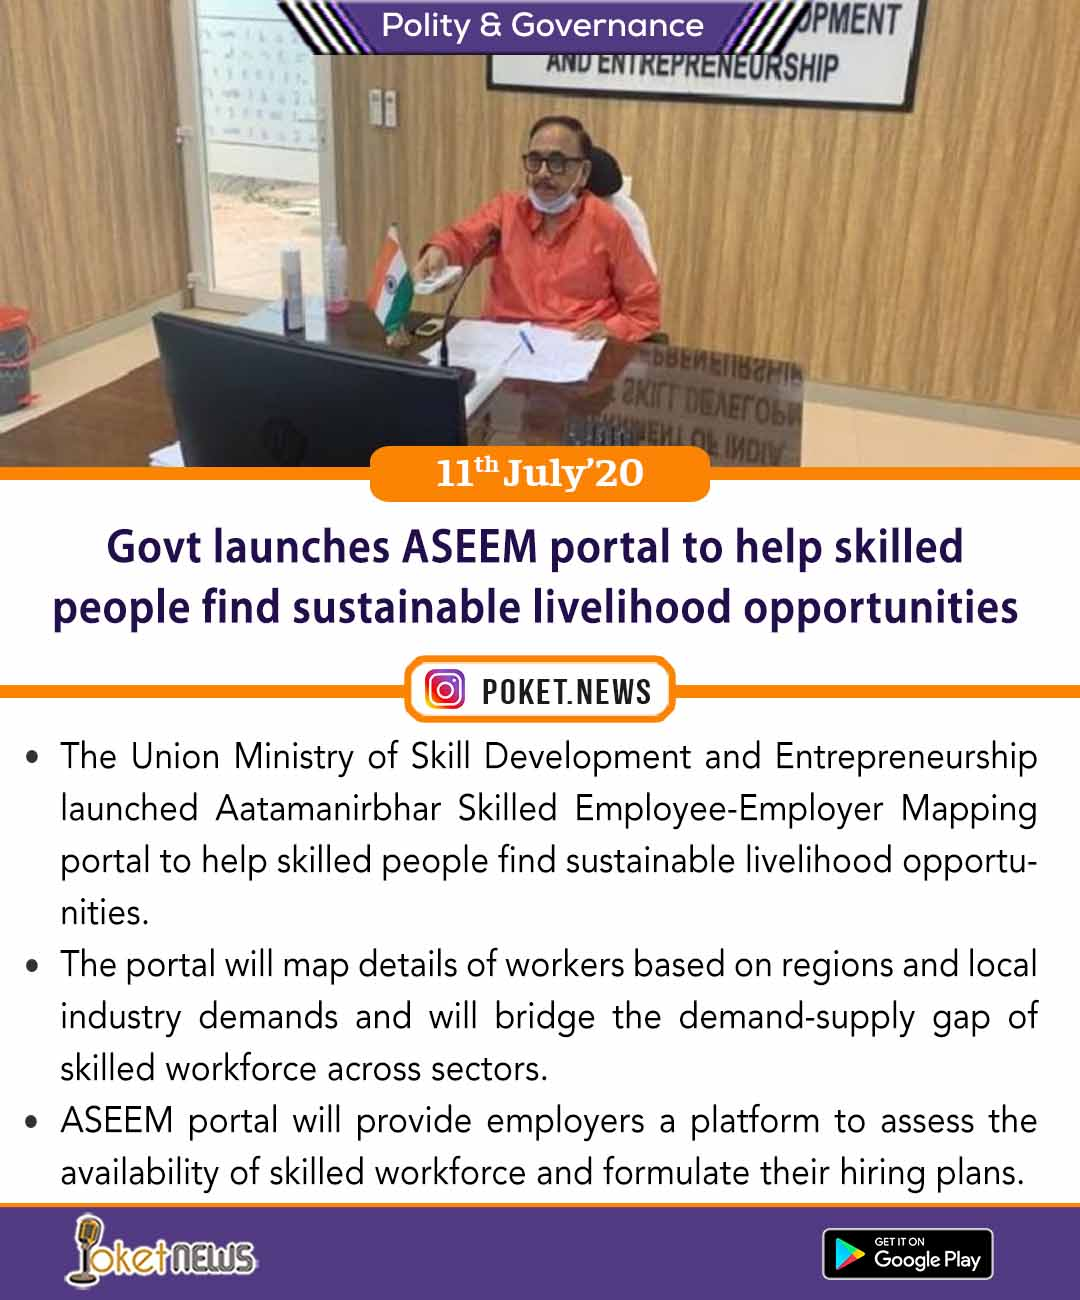 Govt launches ASEEM portal to help skilled people find sustainable livelihood opportunities